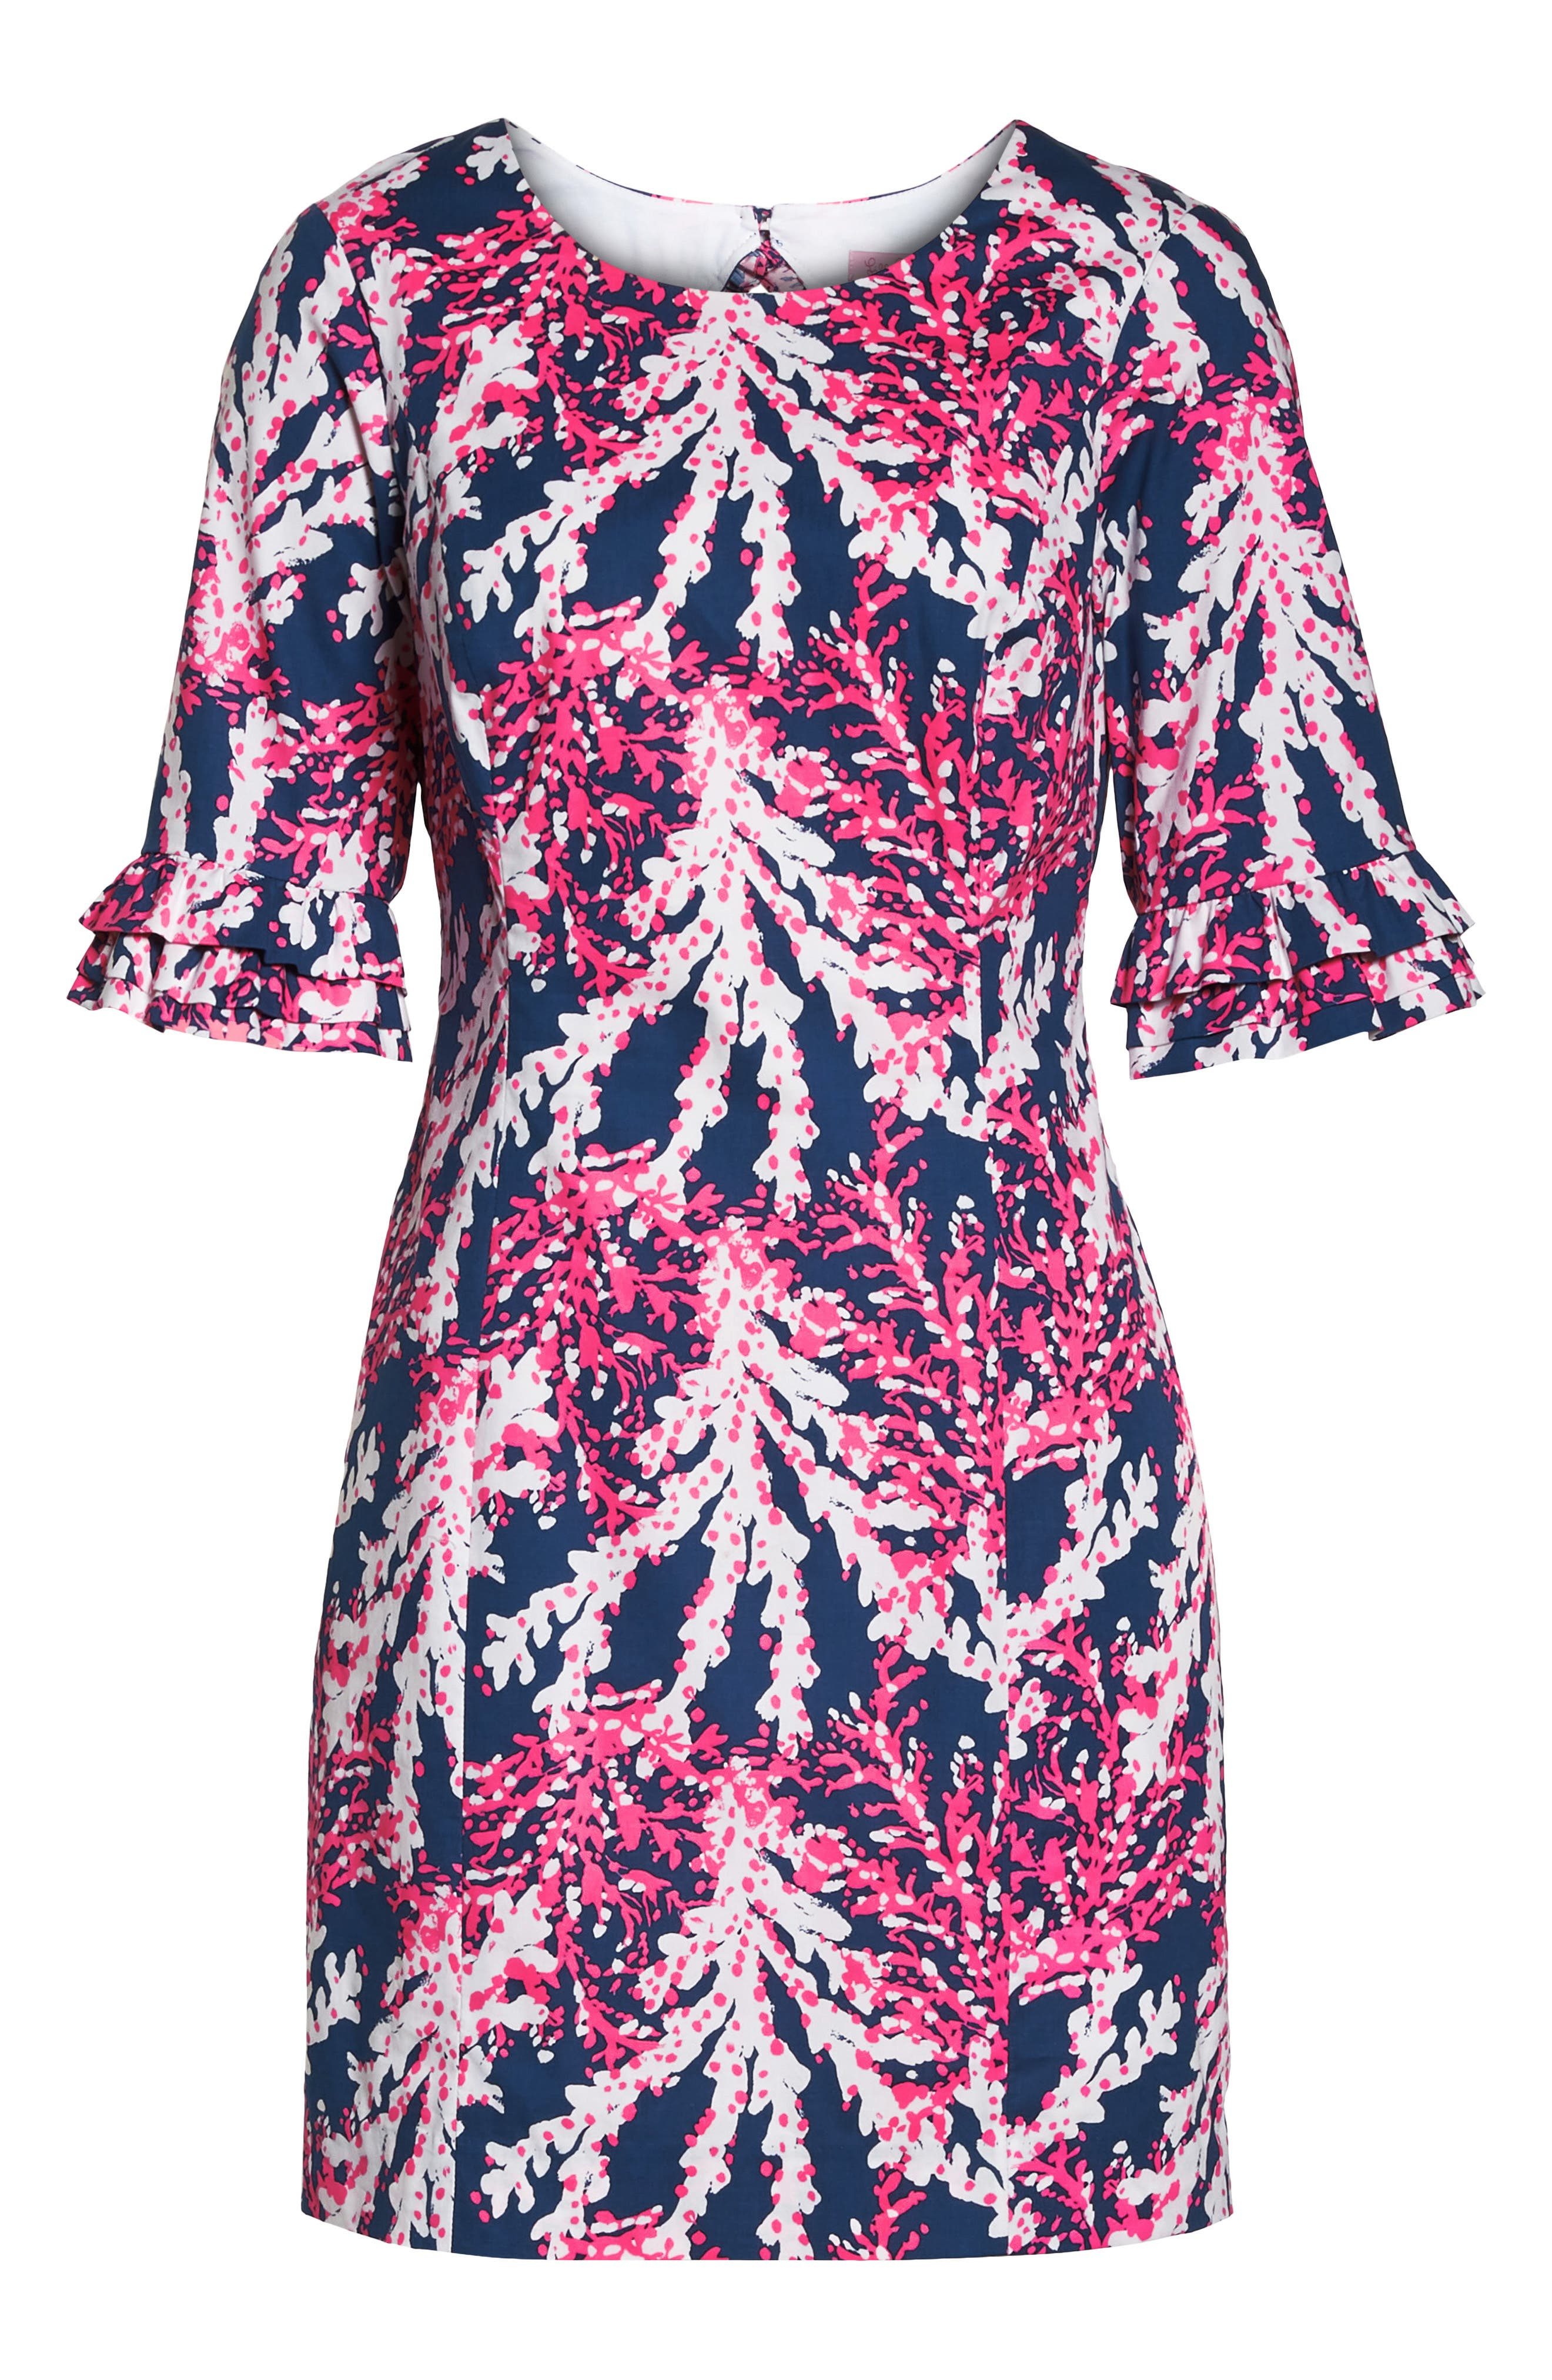 LILLY PULITZER<SUP>®</SUP>,                             Fiesta Stretch Sheath Dress,                             Alternate thumbnail 7, color,                             475